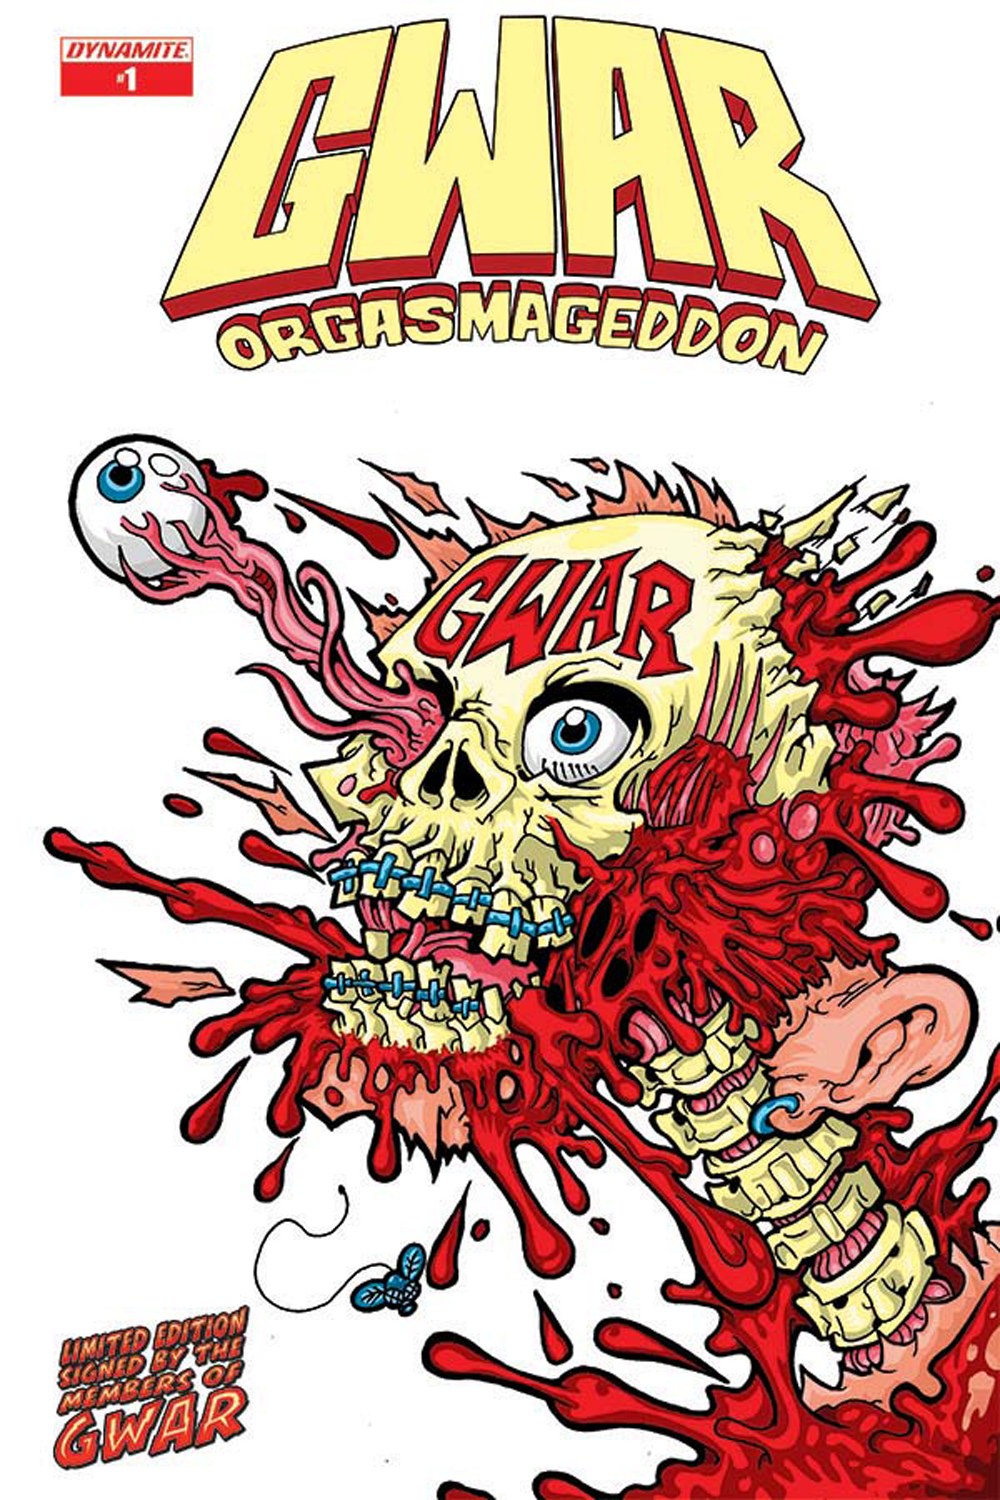 GWAR ORGASMAGEDDON #1 GROUP SGN ED (MR)